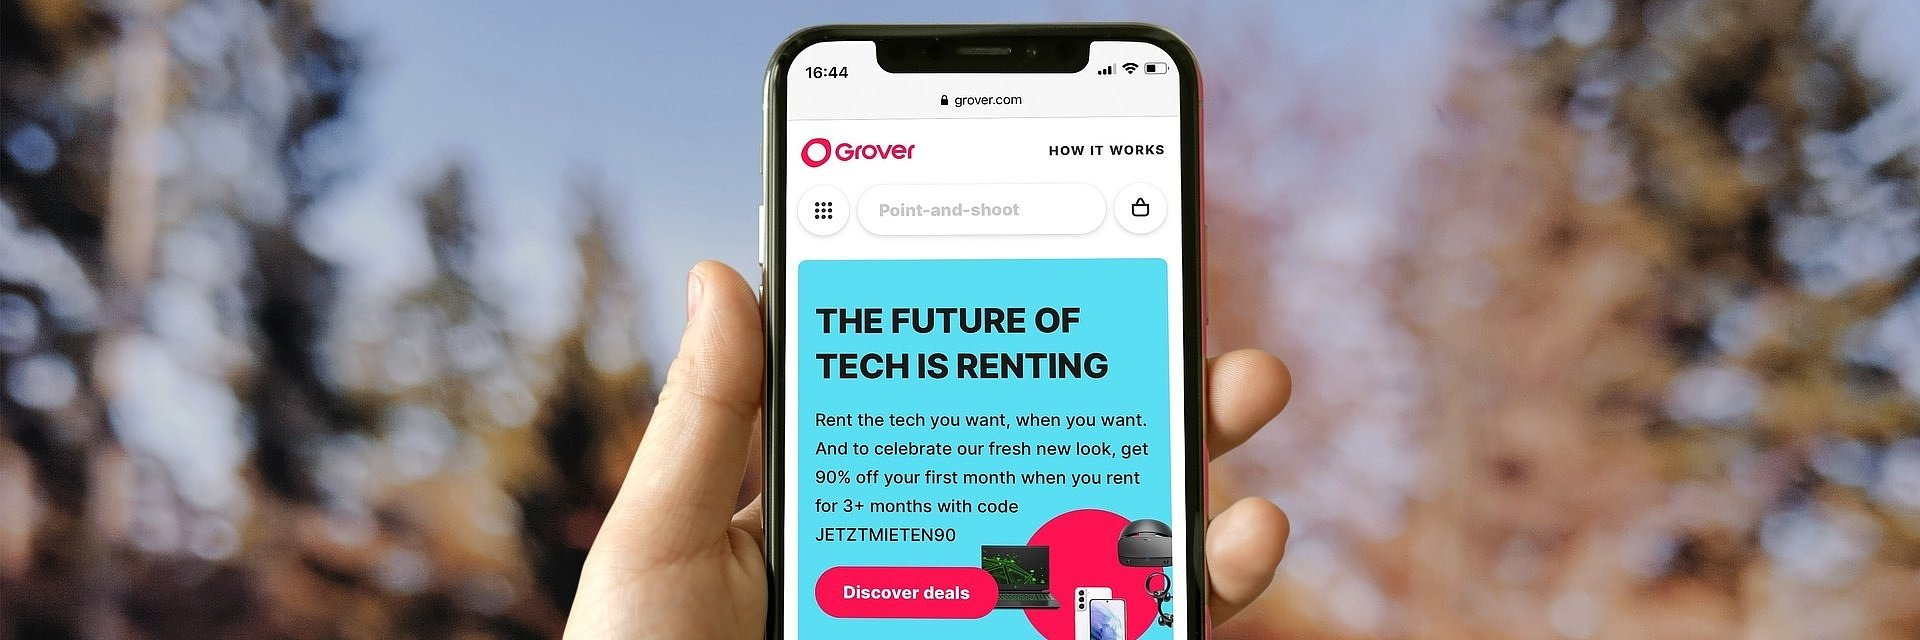 Grover rings in the new year with €250M funding deal